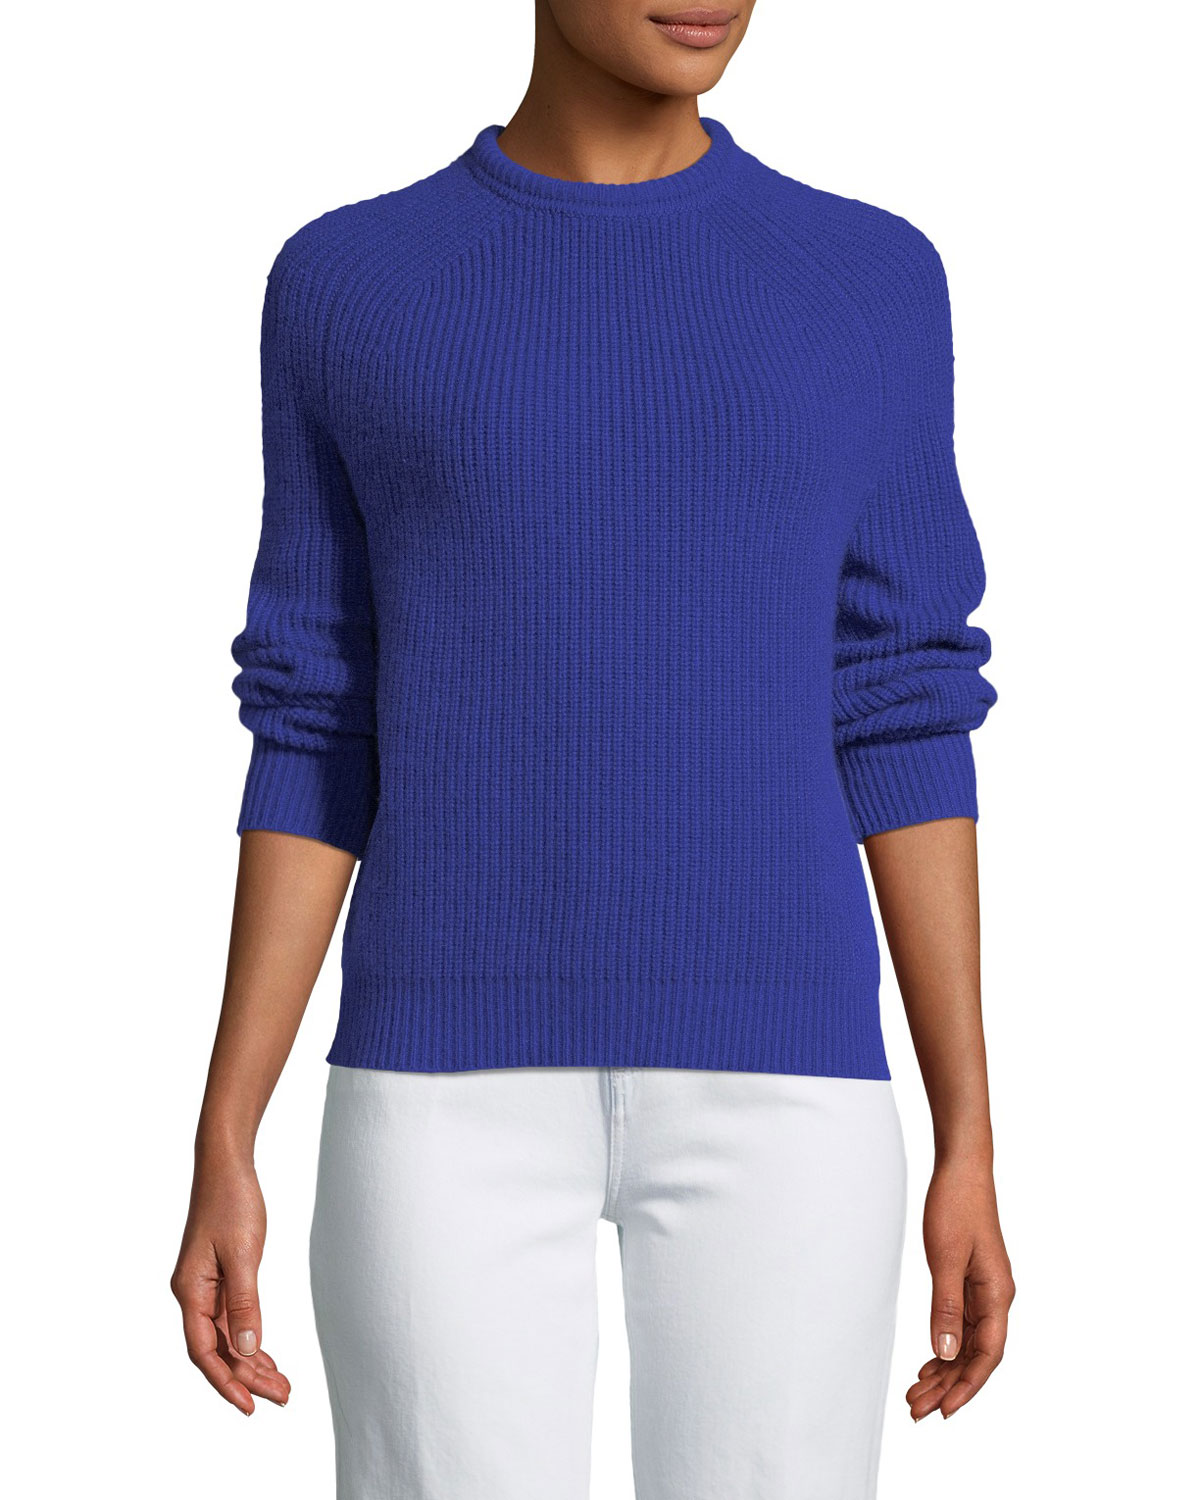 English-Knit Cashmere Crewneck Sweater